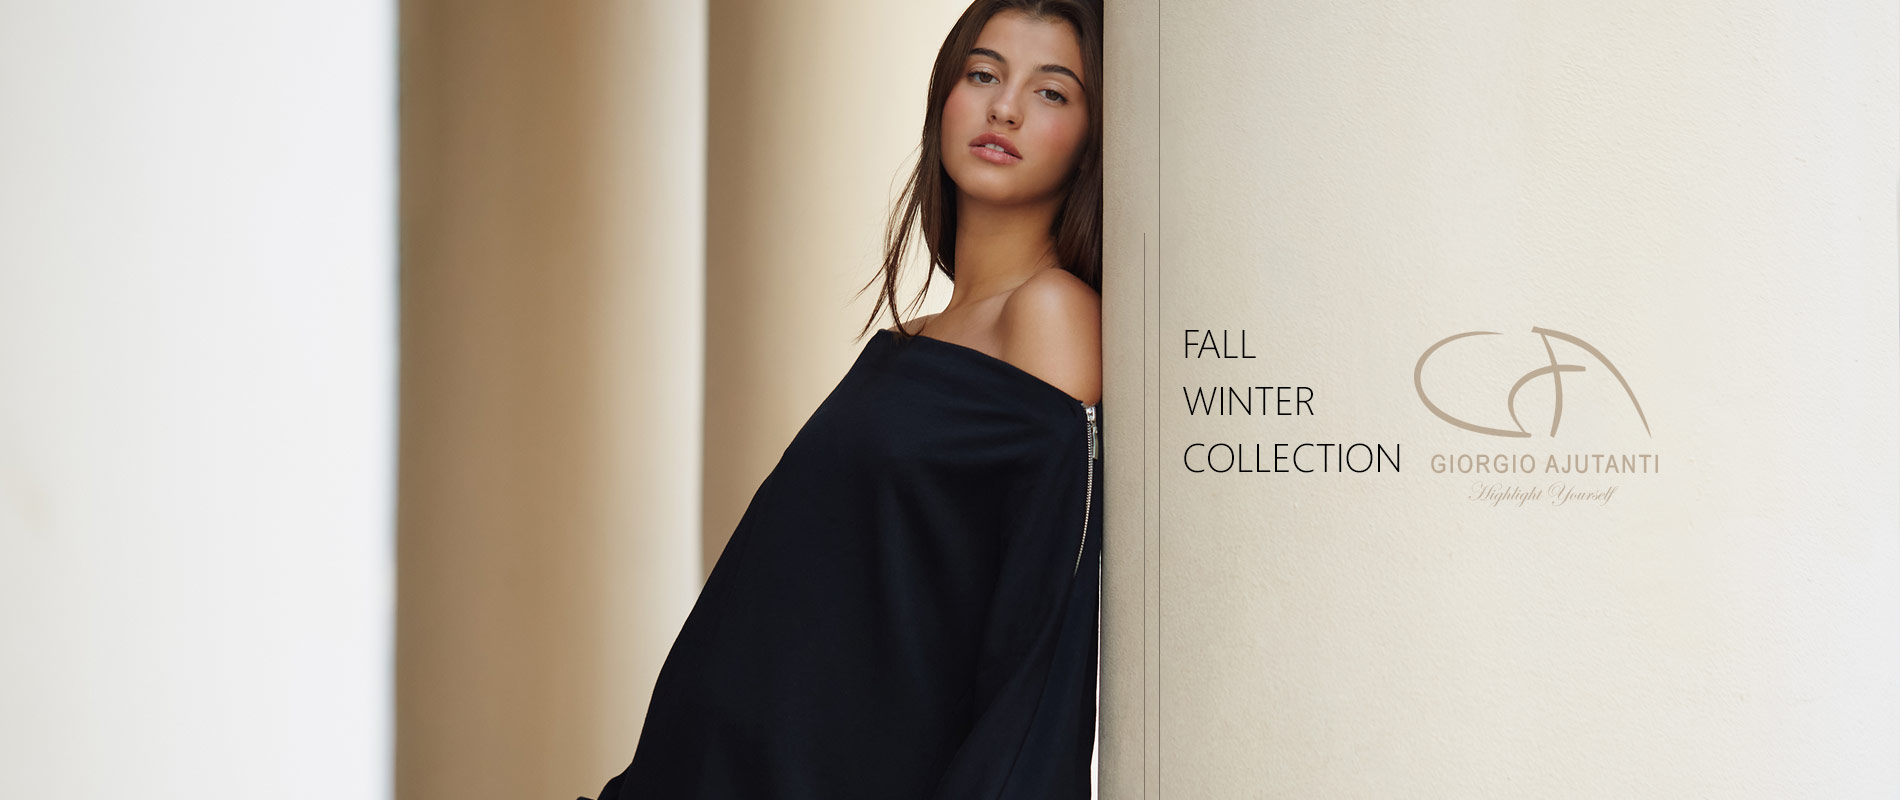 New collection - Fall Winter